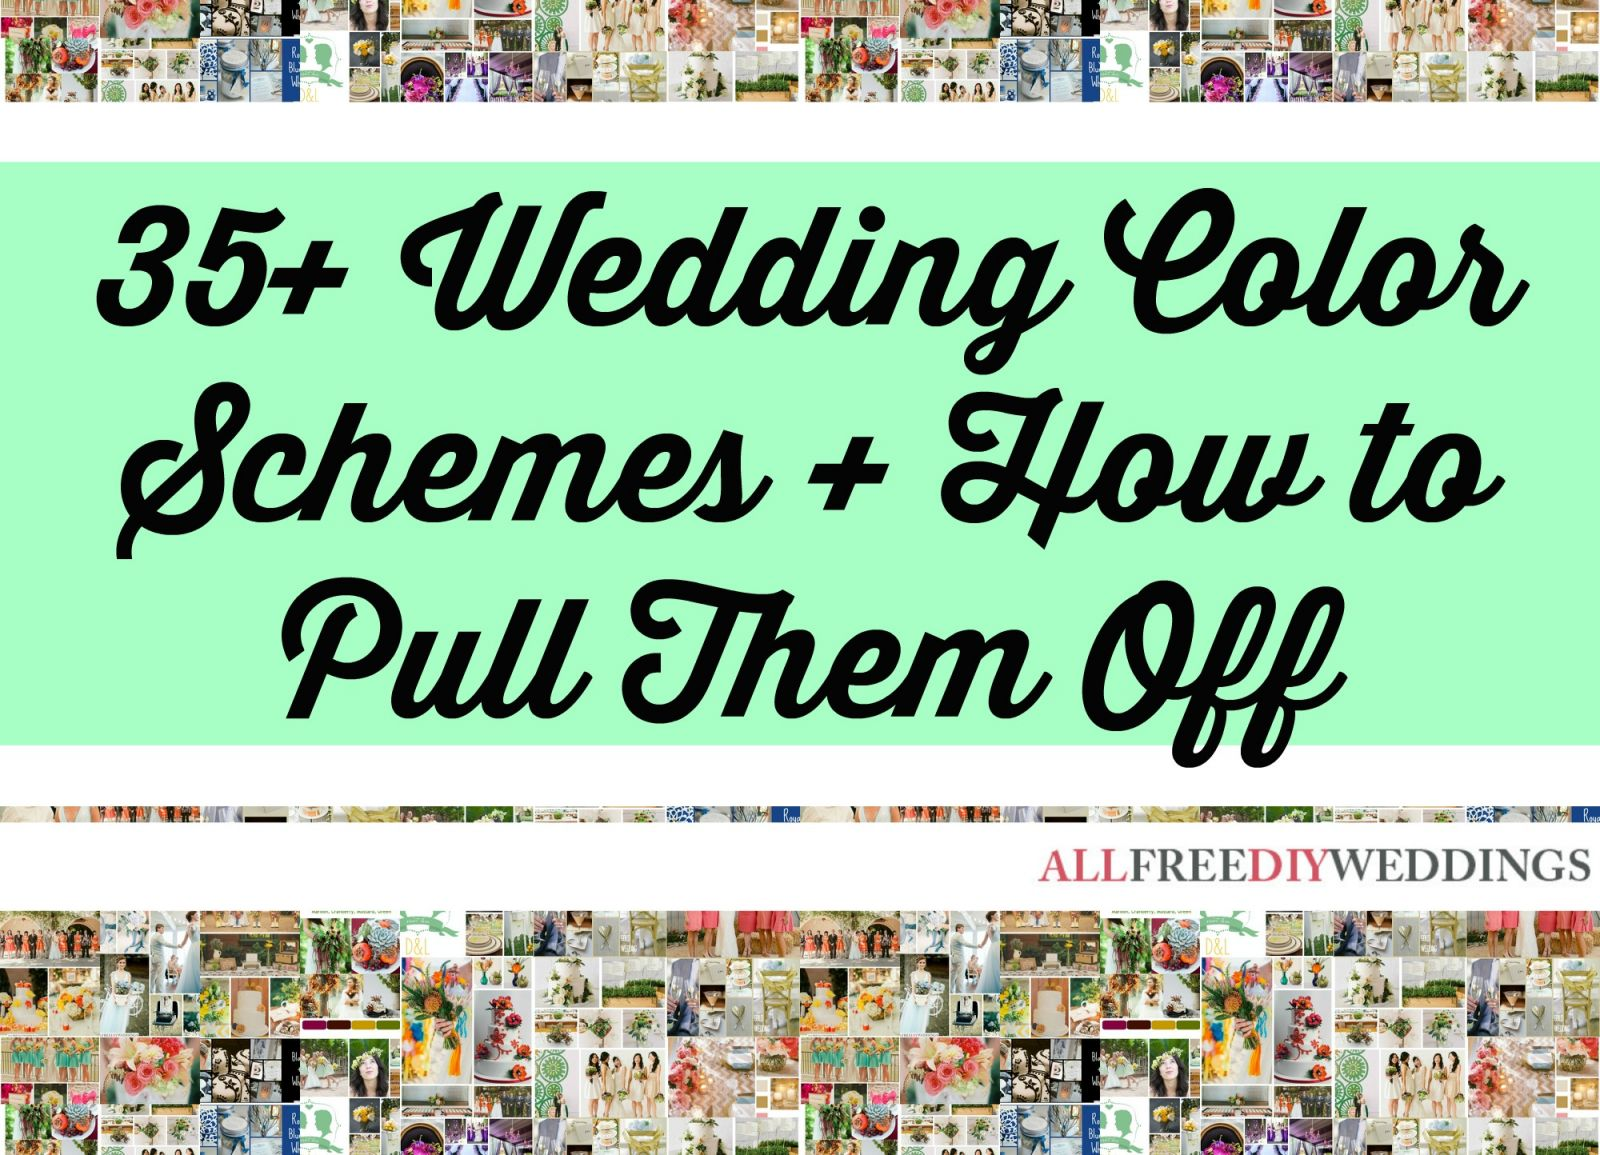 Wedding Color Schemes: 35+ Wedding Color Combinations and How to Pull Them Off